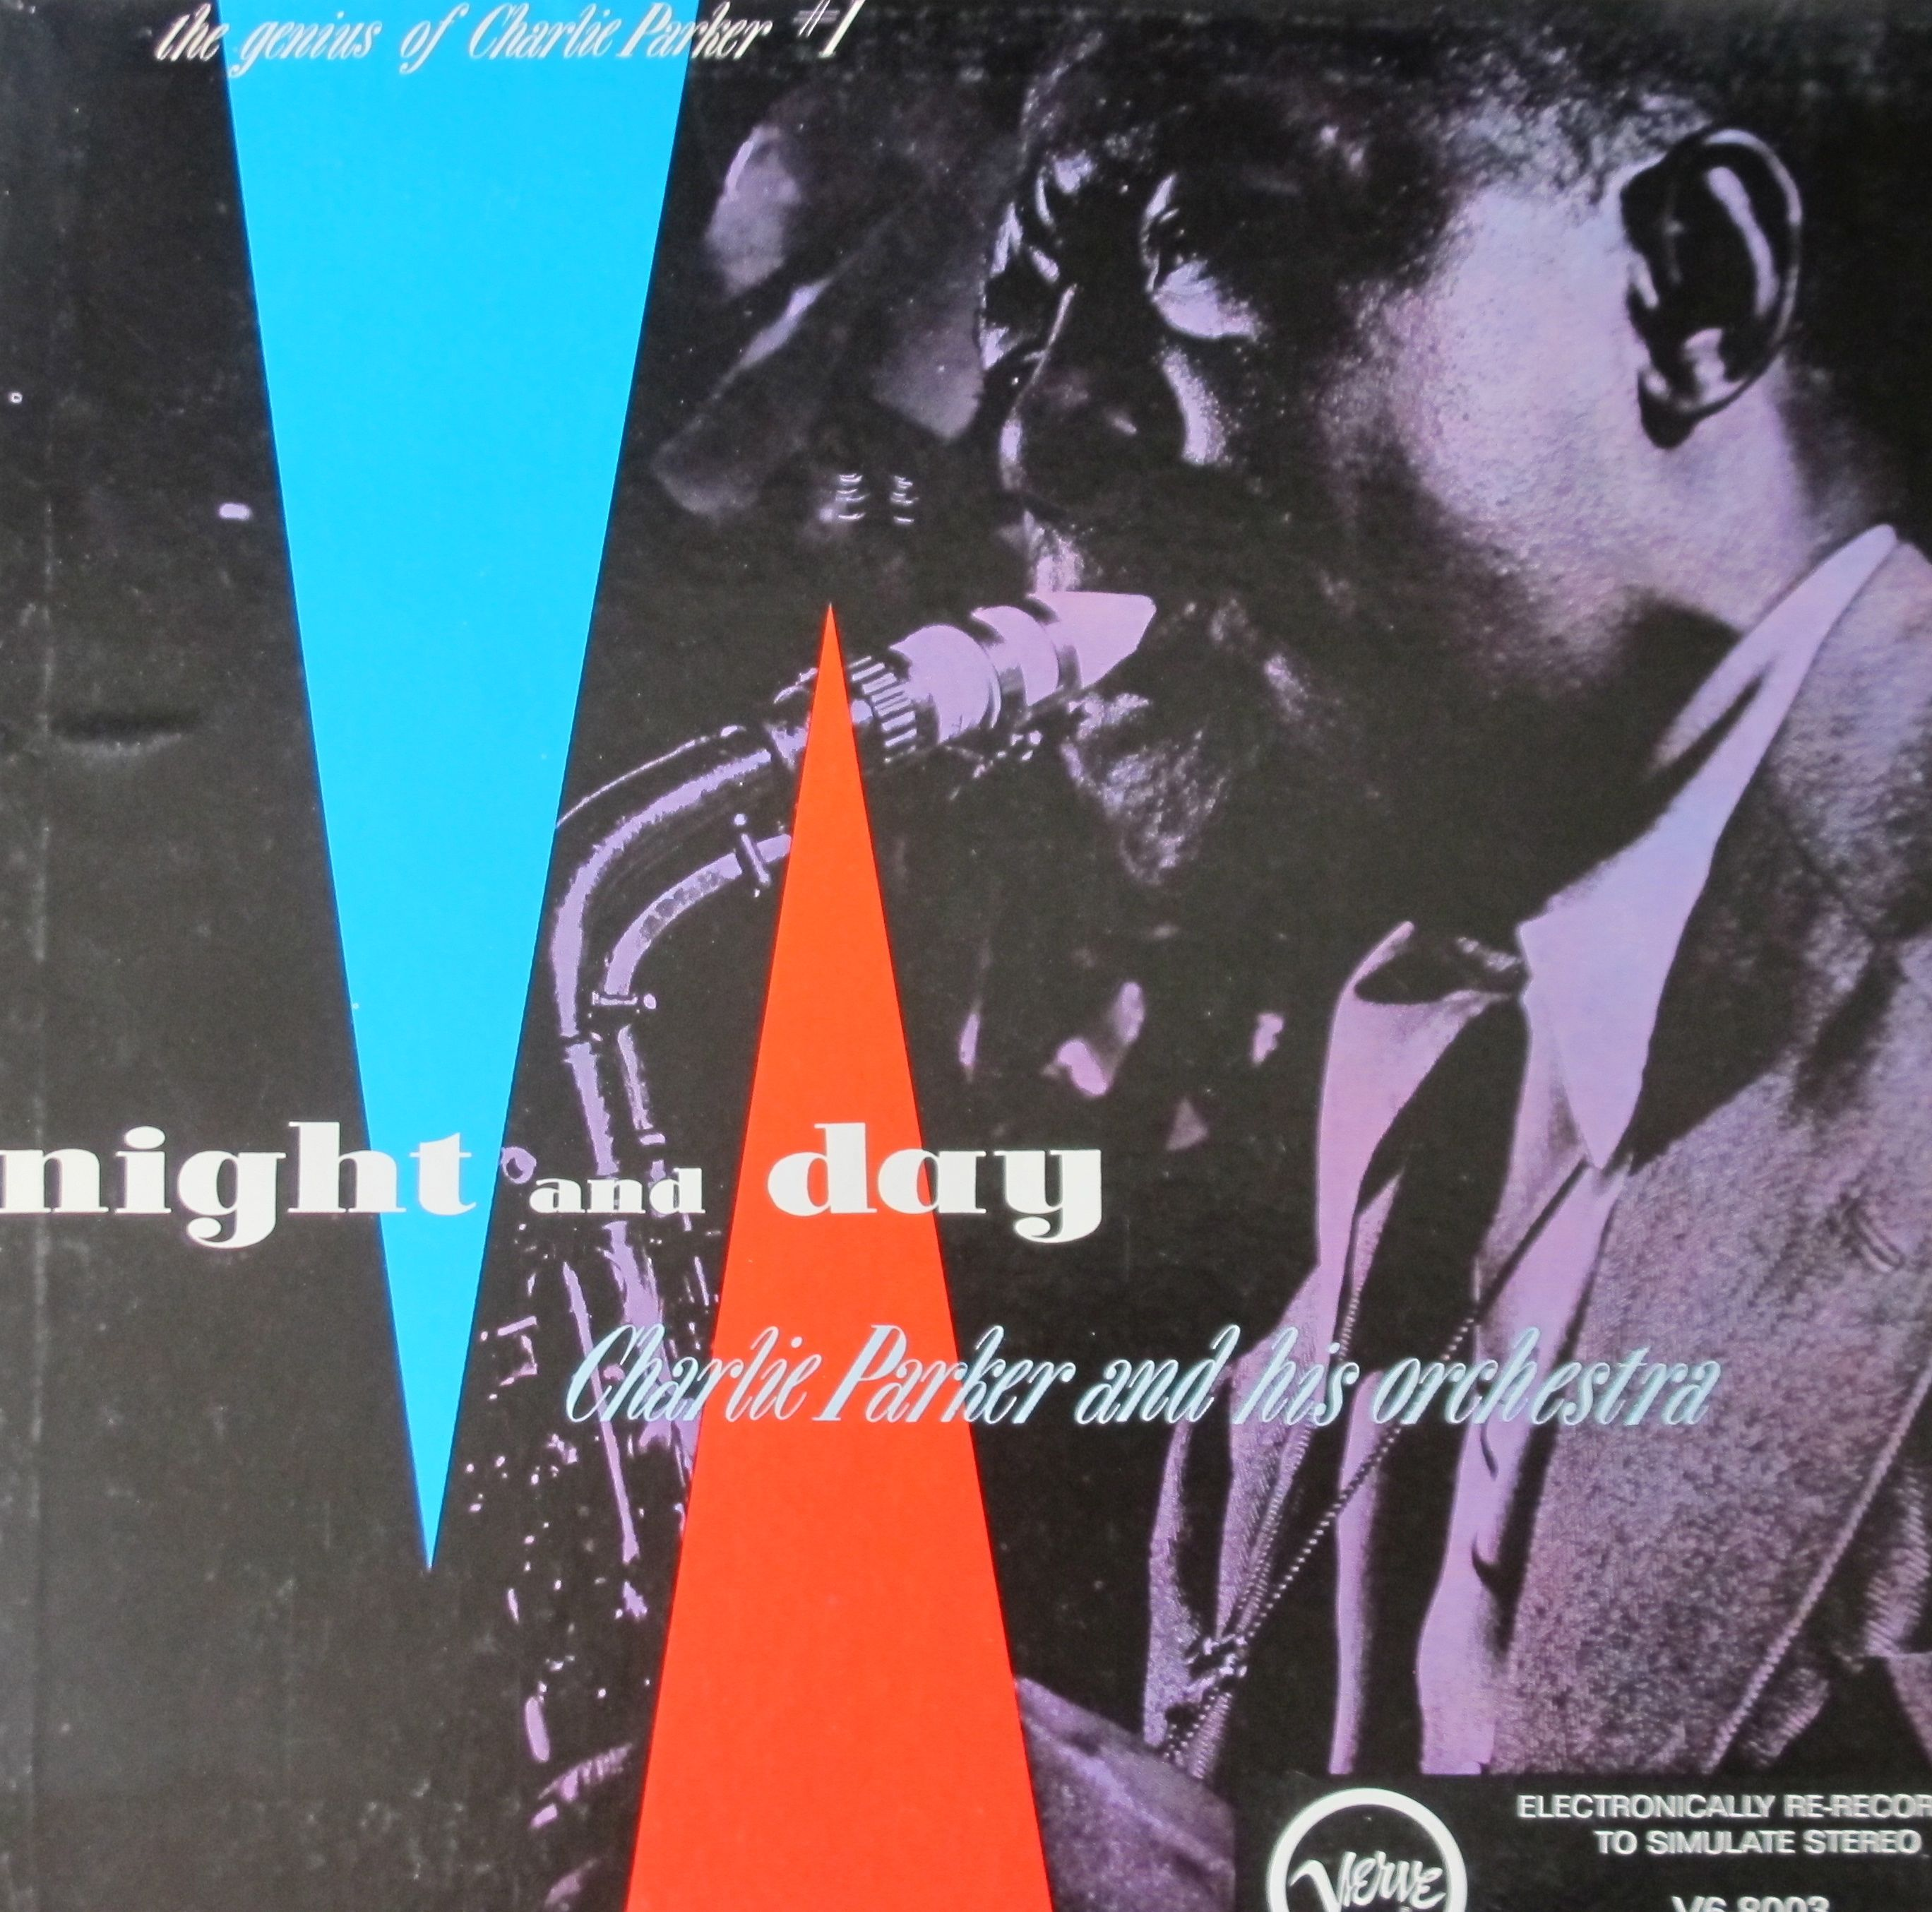 Charlie Parker Night And Day The Genius Of Charlie Parker 1 Day For Night Vinyl Record Art Classic Jazz